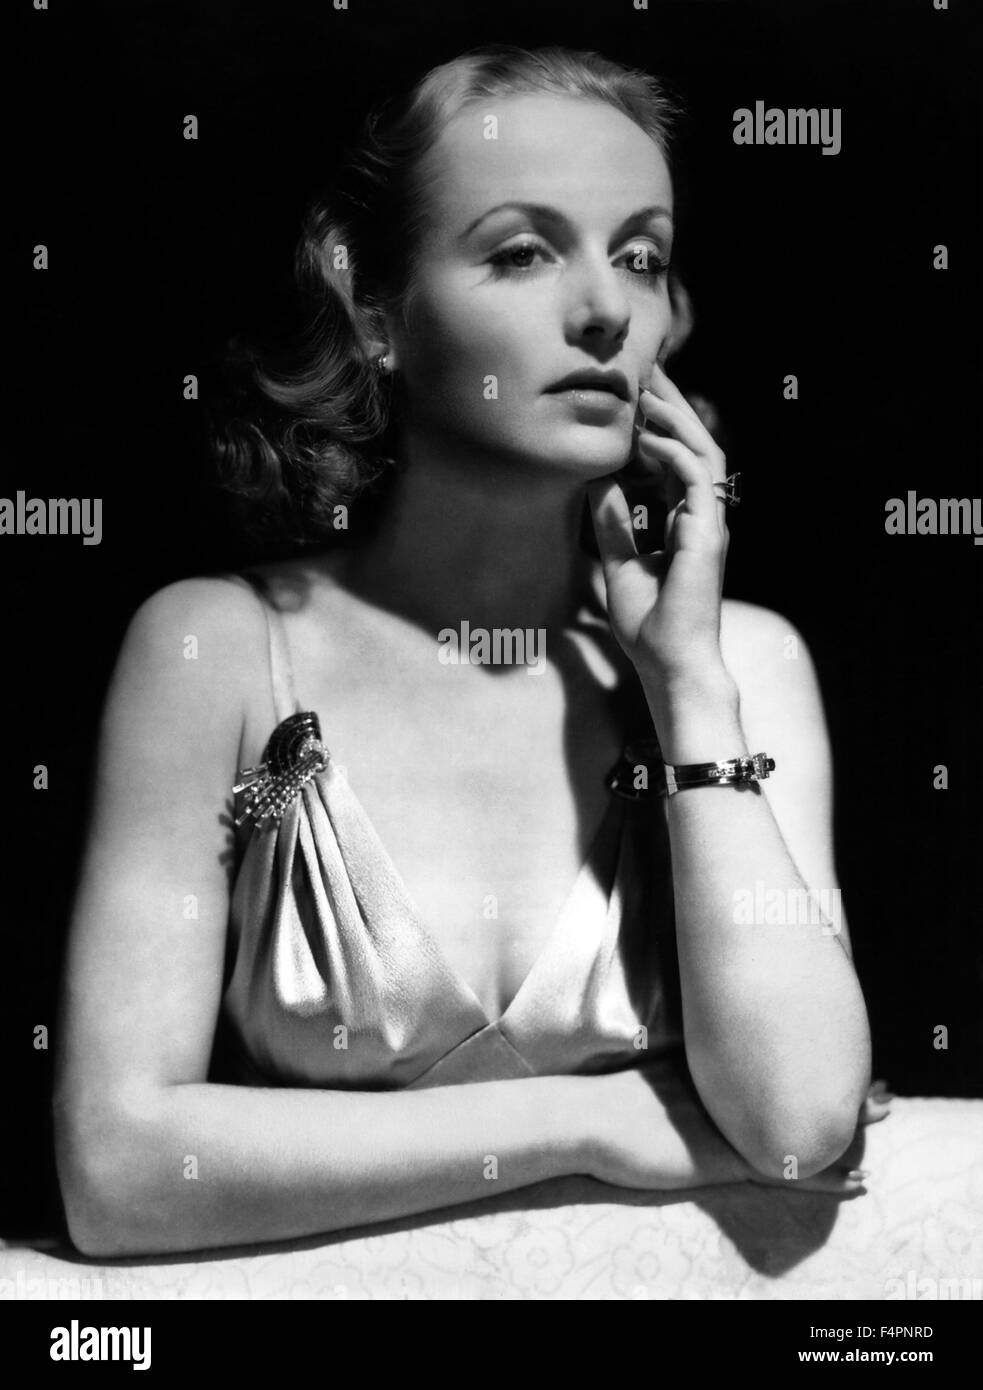 Carole Lombard in the 30's - Stock Image